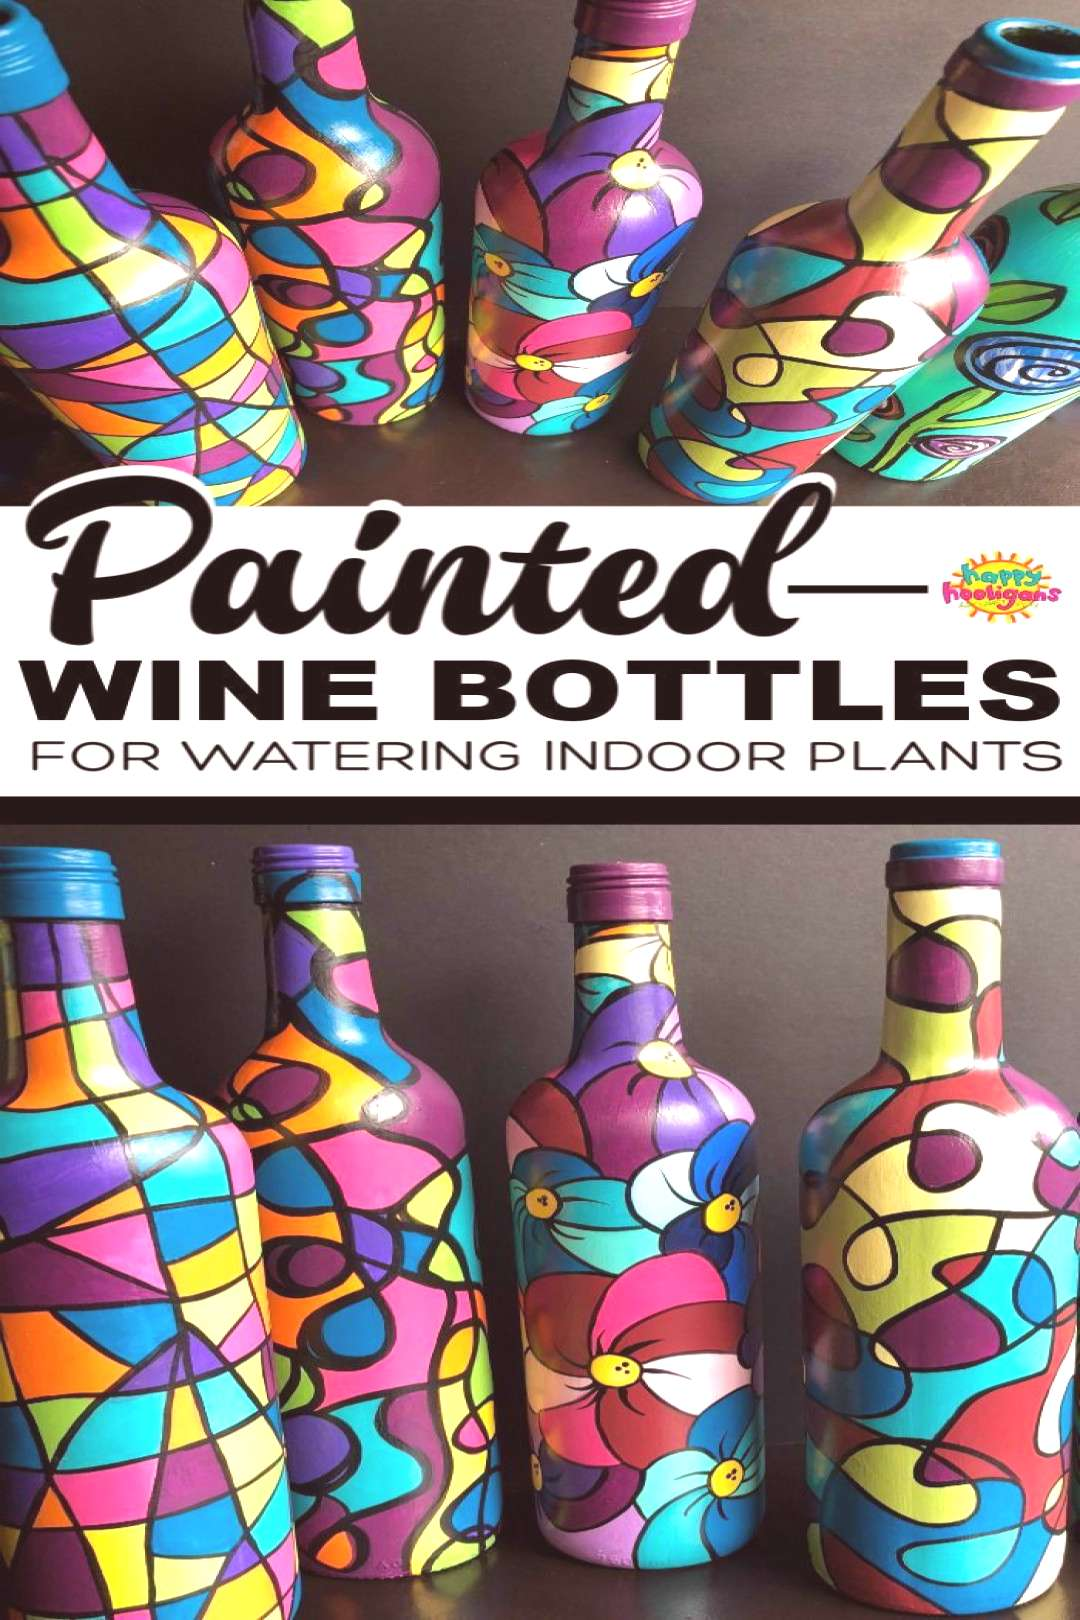 These painted wine bottles are so fun to make. Theyre great for watering potted plants. The long n